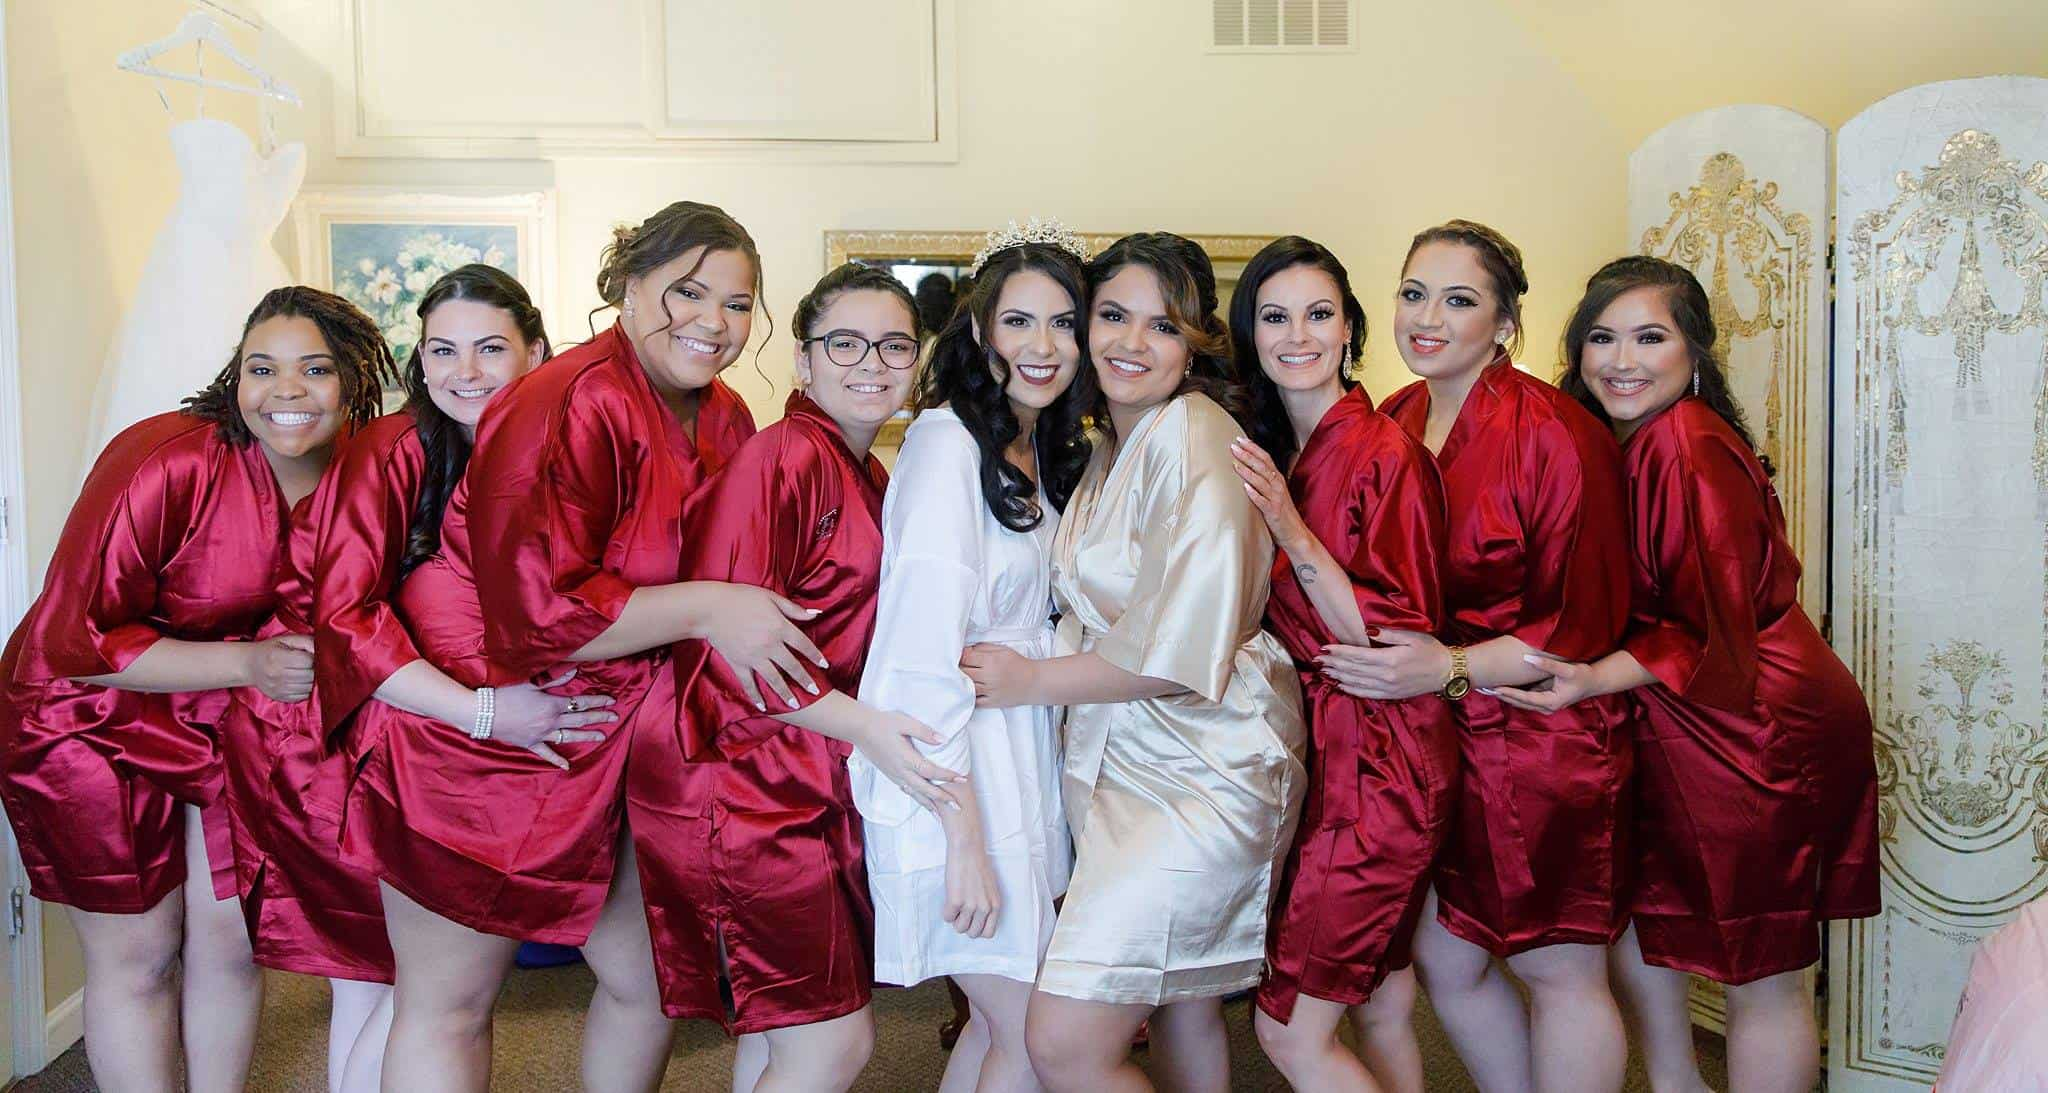 Bride with Bridesmaids wearing red satin robes in bride's dressing room